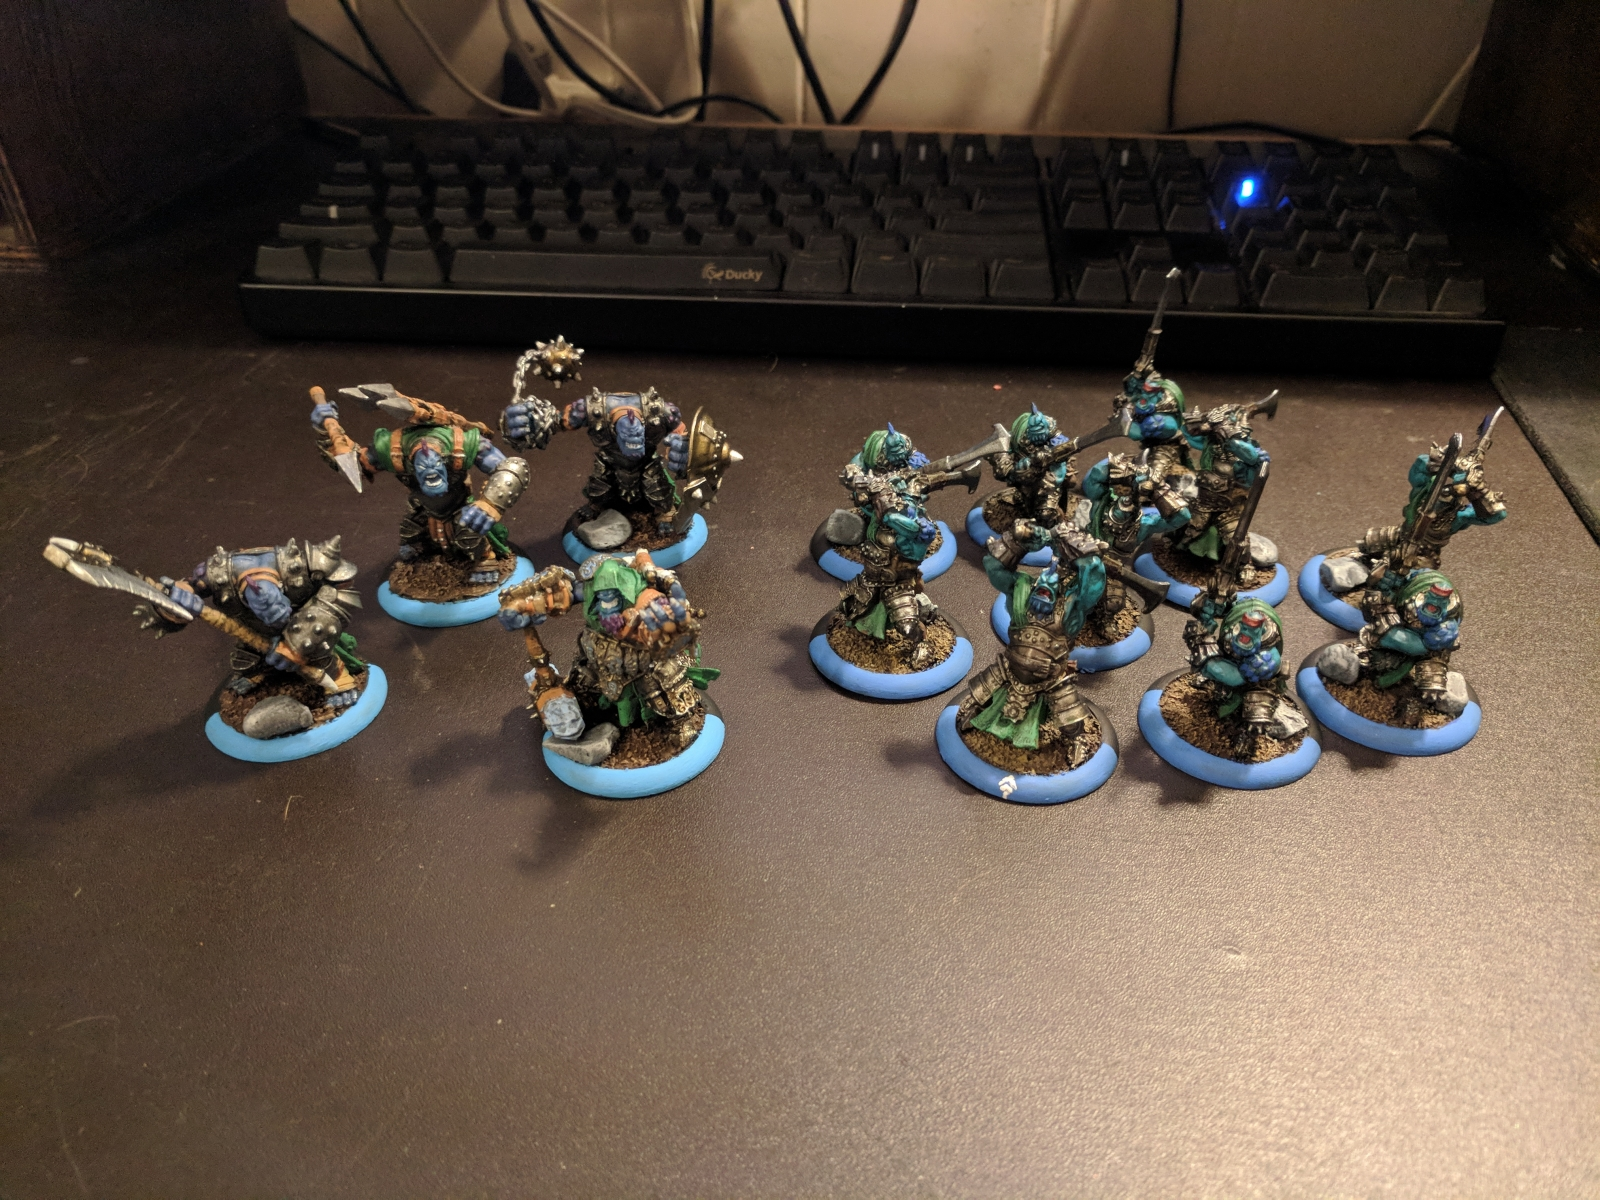 The start of my Trollbloods army from the 2-Player Battlebox